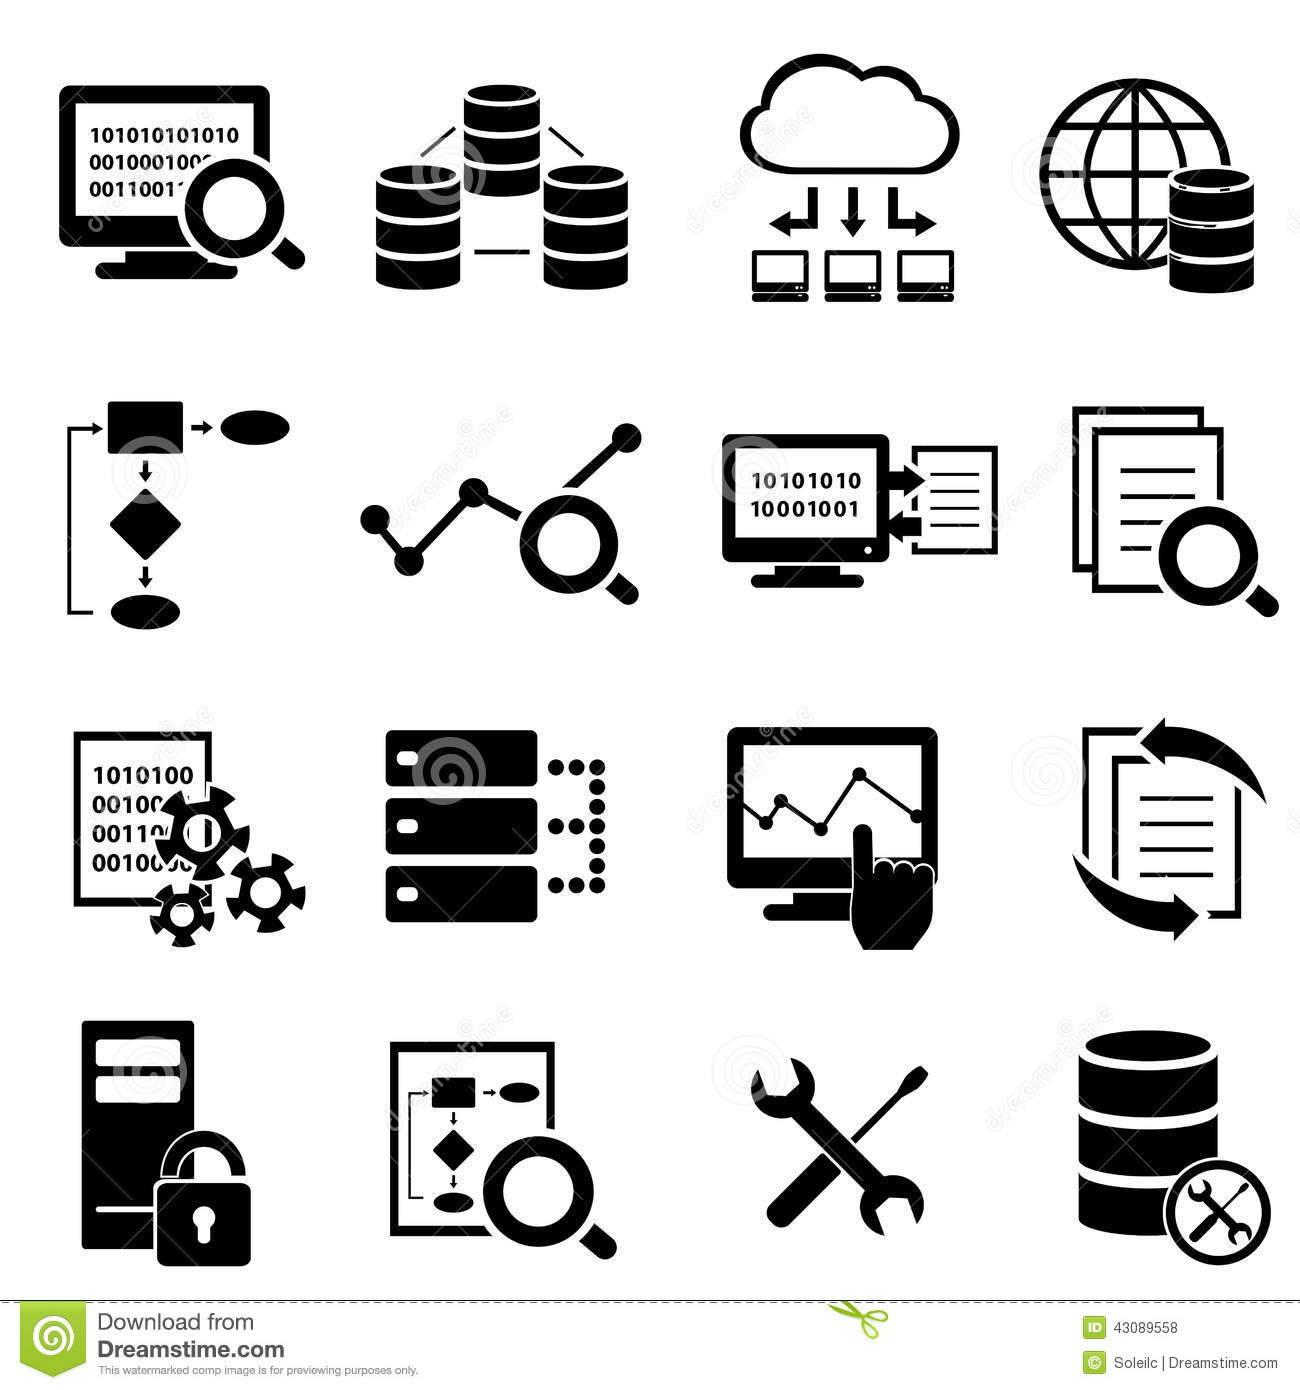 Big data cloud computing technology icons stock illustrations.